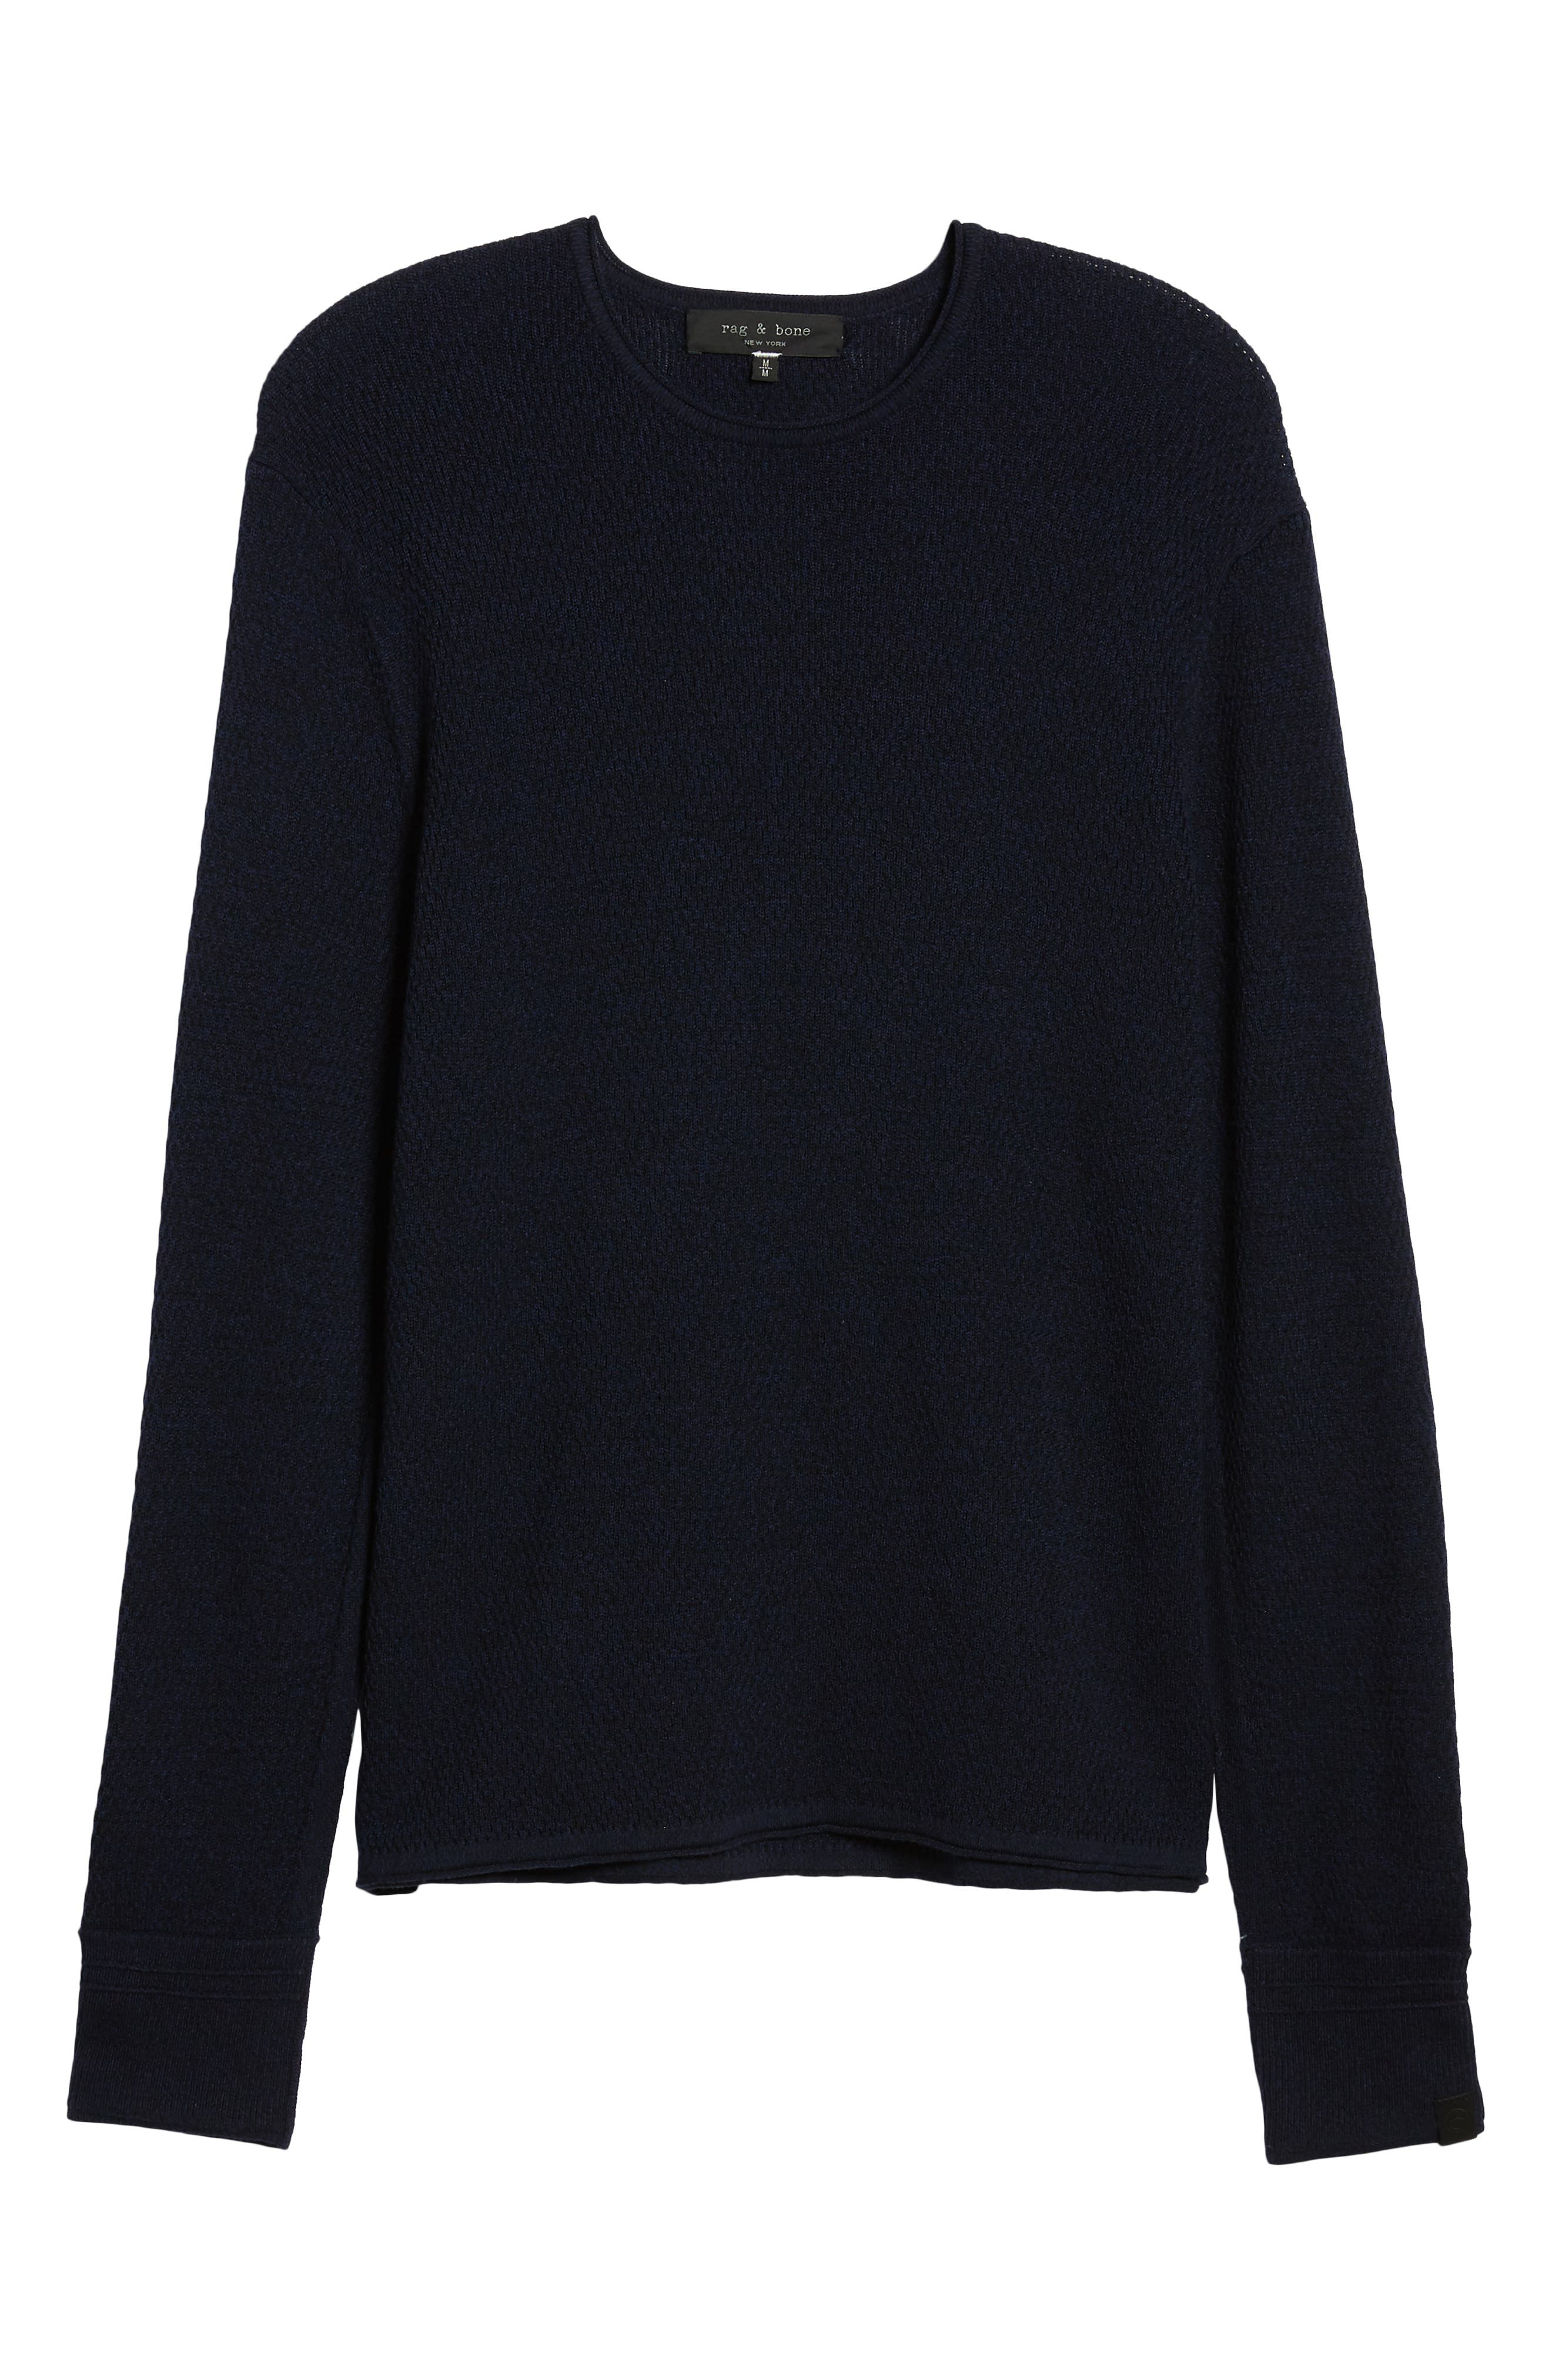 Gregory Wool Blend Crewneck Sweater,                             Alternate thumbnail 6, color,                             NAVY